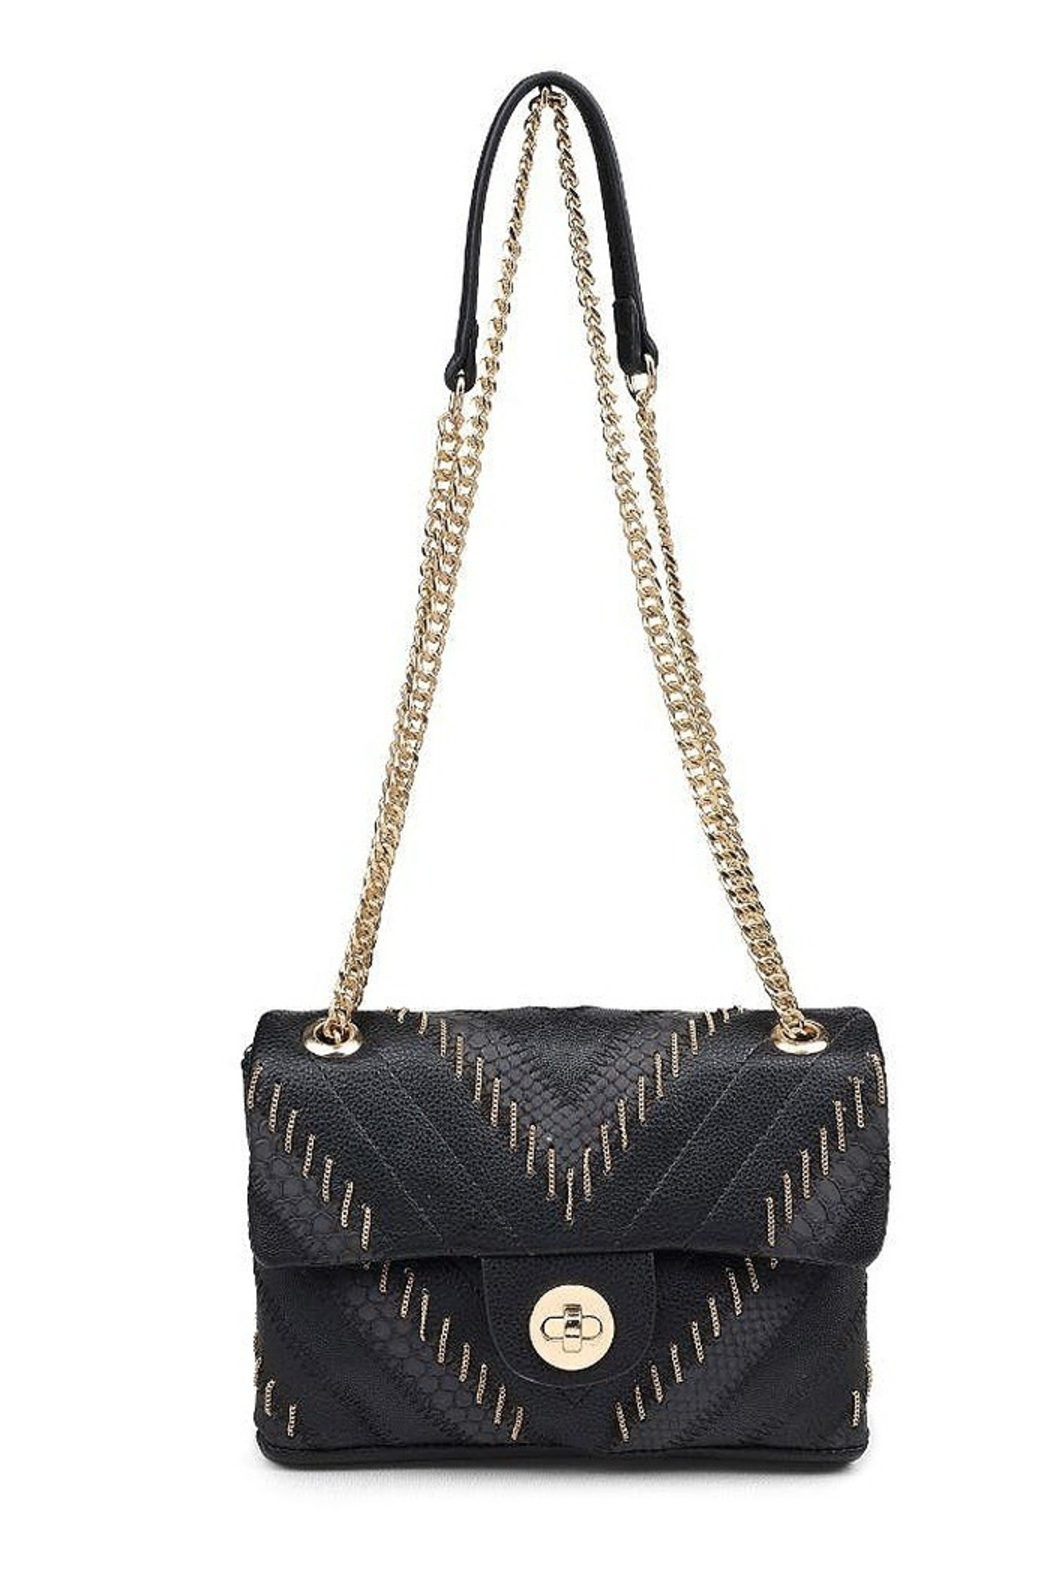 Urban Expressions Kaiden Crossbody - Front Cropped Image